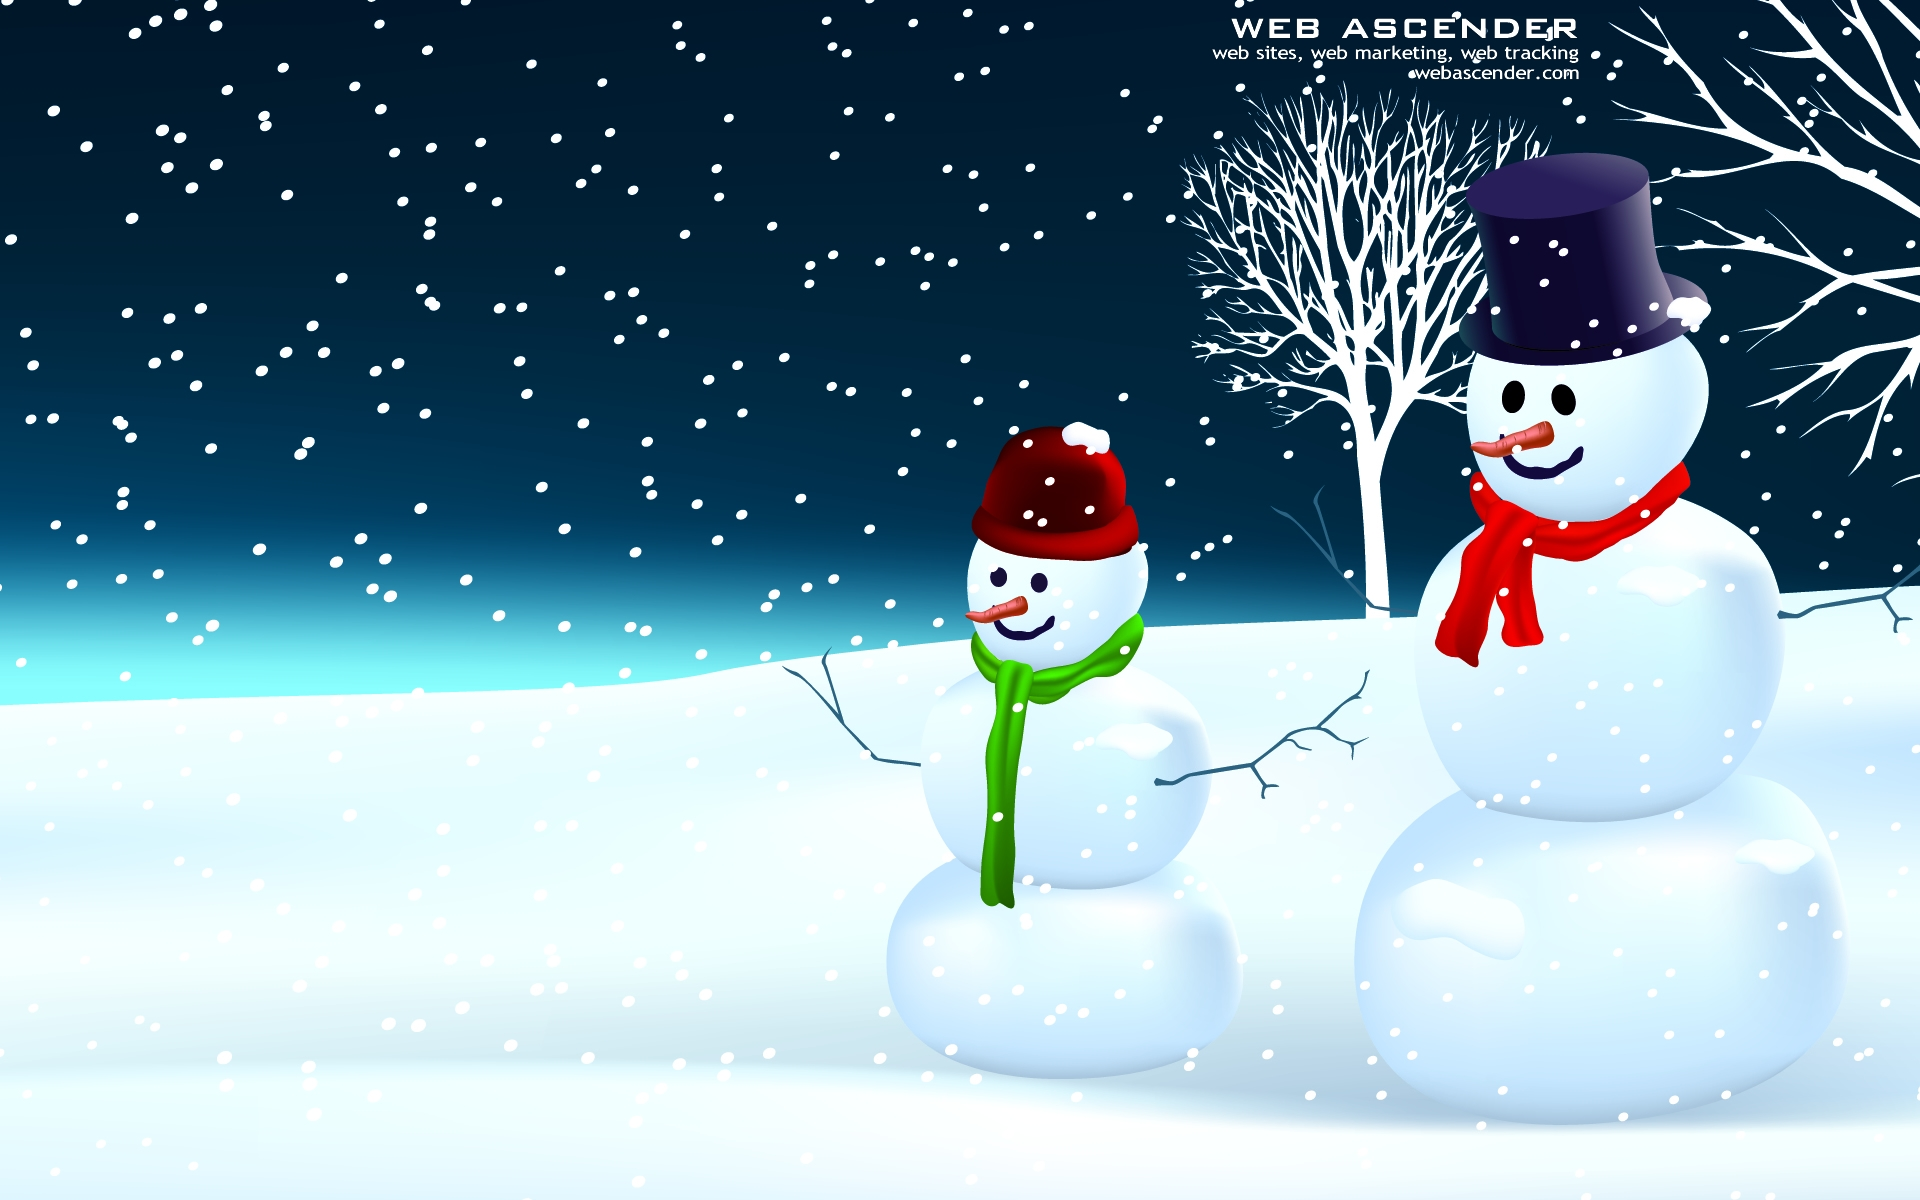 Snowman Wallpaper Widescreen Download